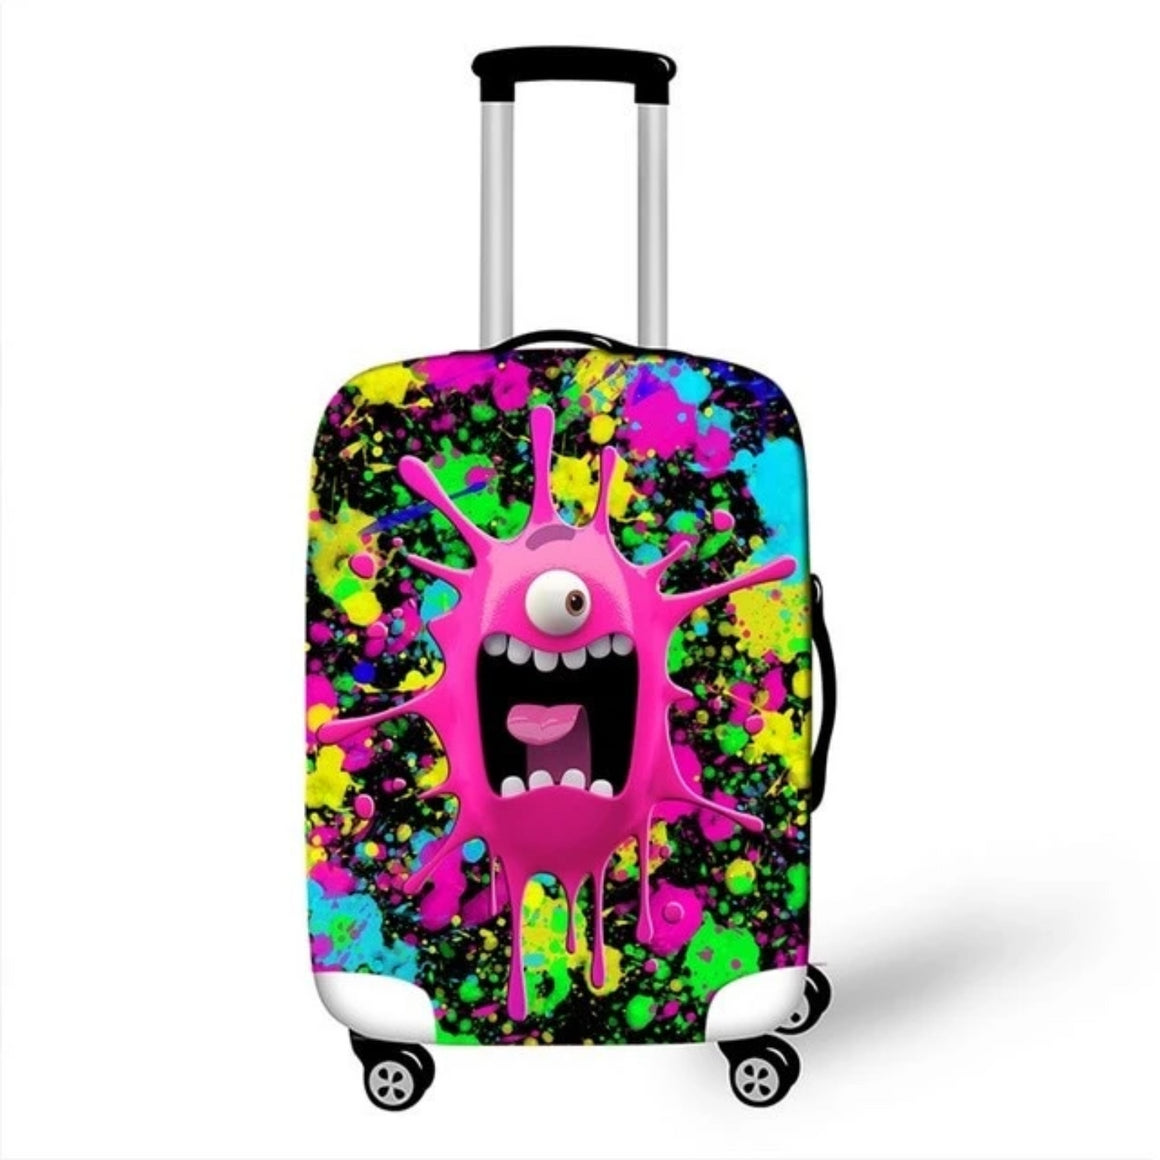 3D Cartoon Travel Luggage Protective Covers Women Men Colorful valise bagages roulettes 70cm Girls Suitcase Travel Accessories